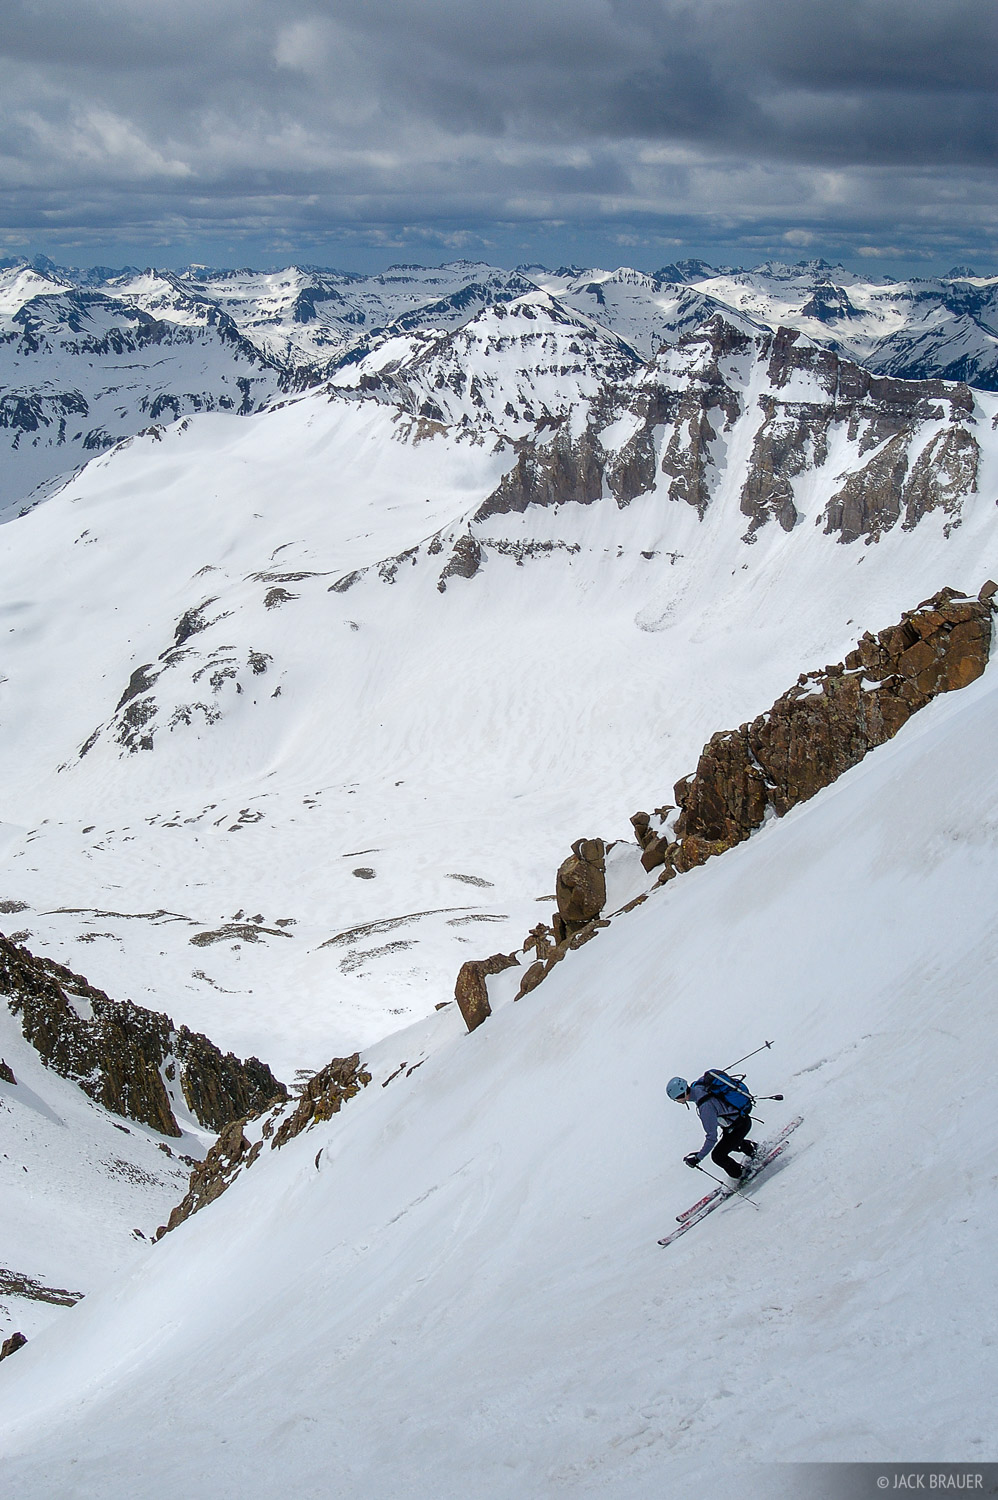 skiing, Mt. Sneffels, Lavendar Col, San Juans, Colorado, 14er, June, spring, backcountry, photo